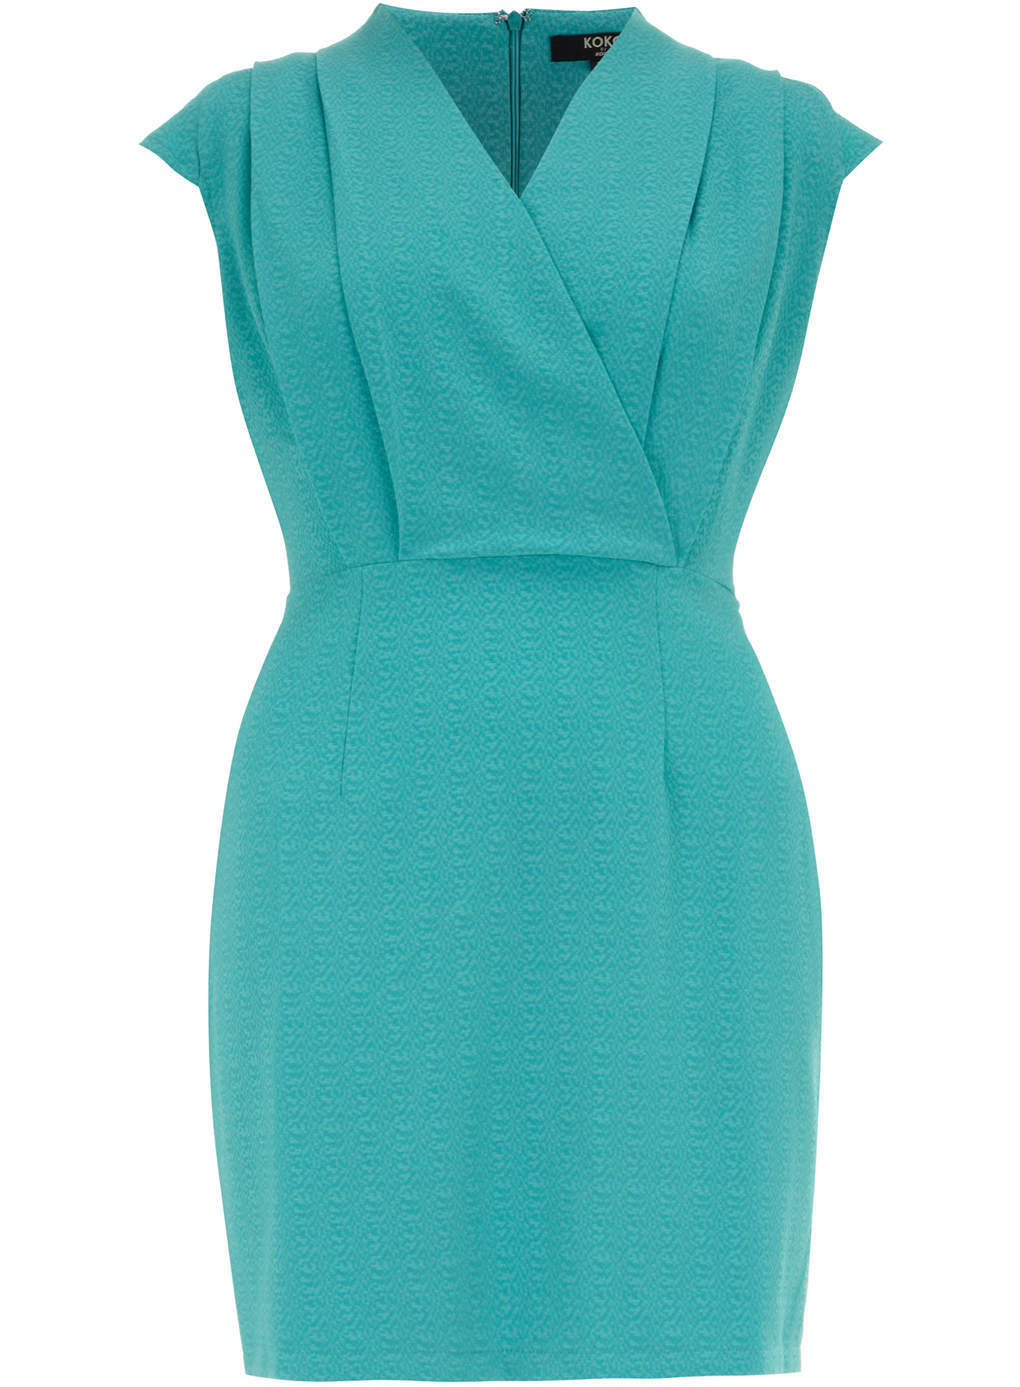 Koko Koko Turquoise Textured Wrap Over Dress - style: faux wrap/wrap; length: mid thigh; neckline: v-neck; sleeve style: capped; fit: tailored/fitted; pattern: plain; predominant colour: turquoise; occasions: evening, occasion; fibres: polyester/polyamide - 100%; sleeve length: sleeveless; texture group: crepes; bust detail: tiers/frills/bulky drapes/pleats; pattern type: fabric; trends: hot brights; season: s/s 2014